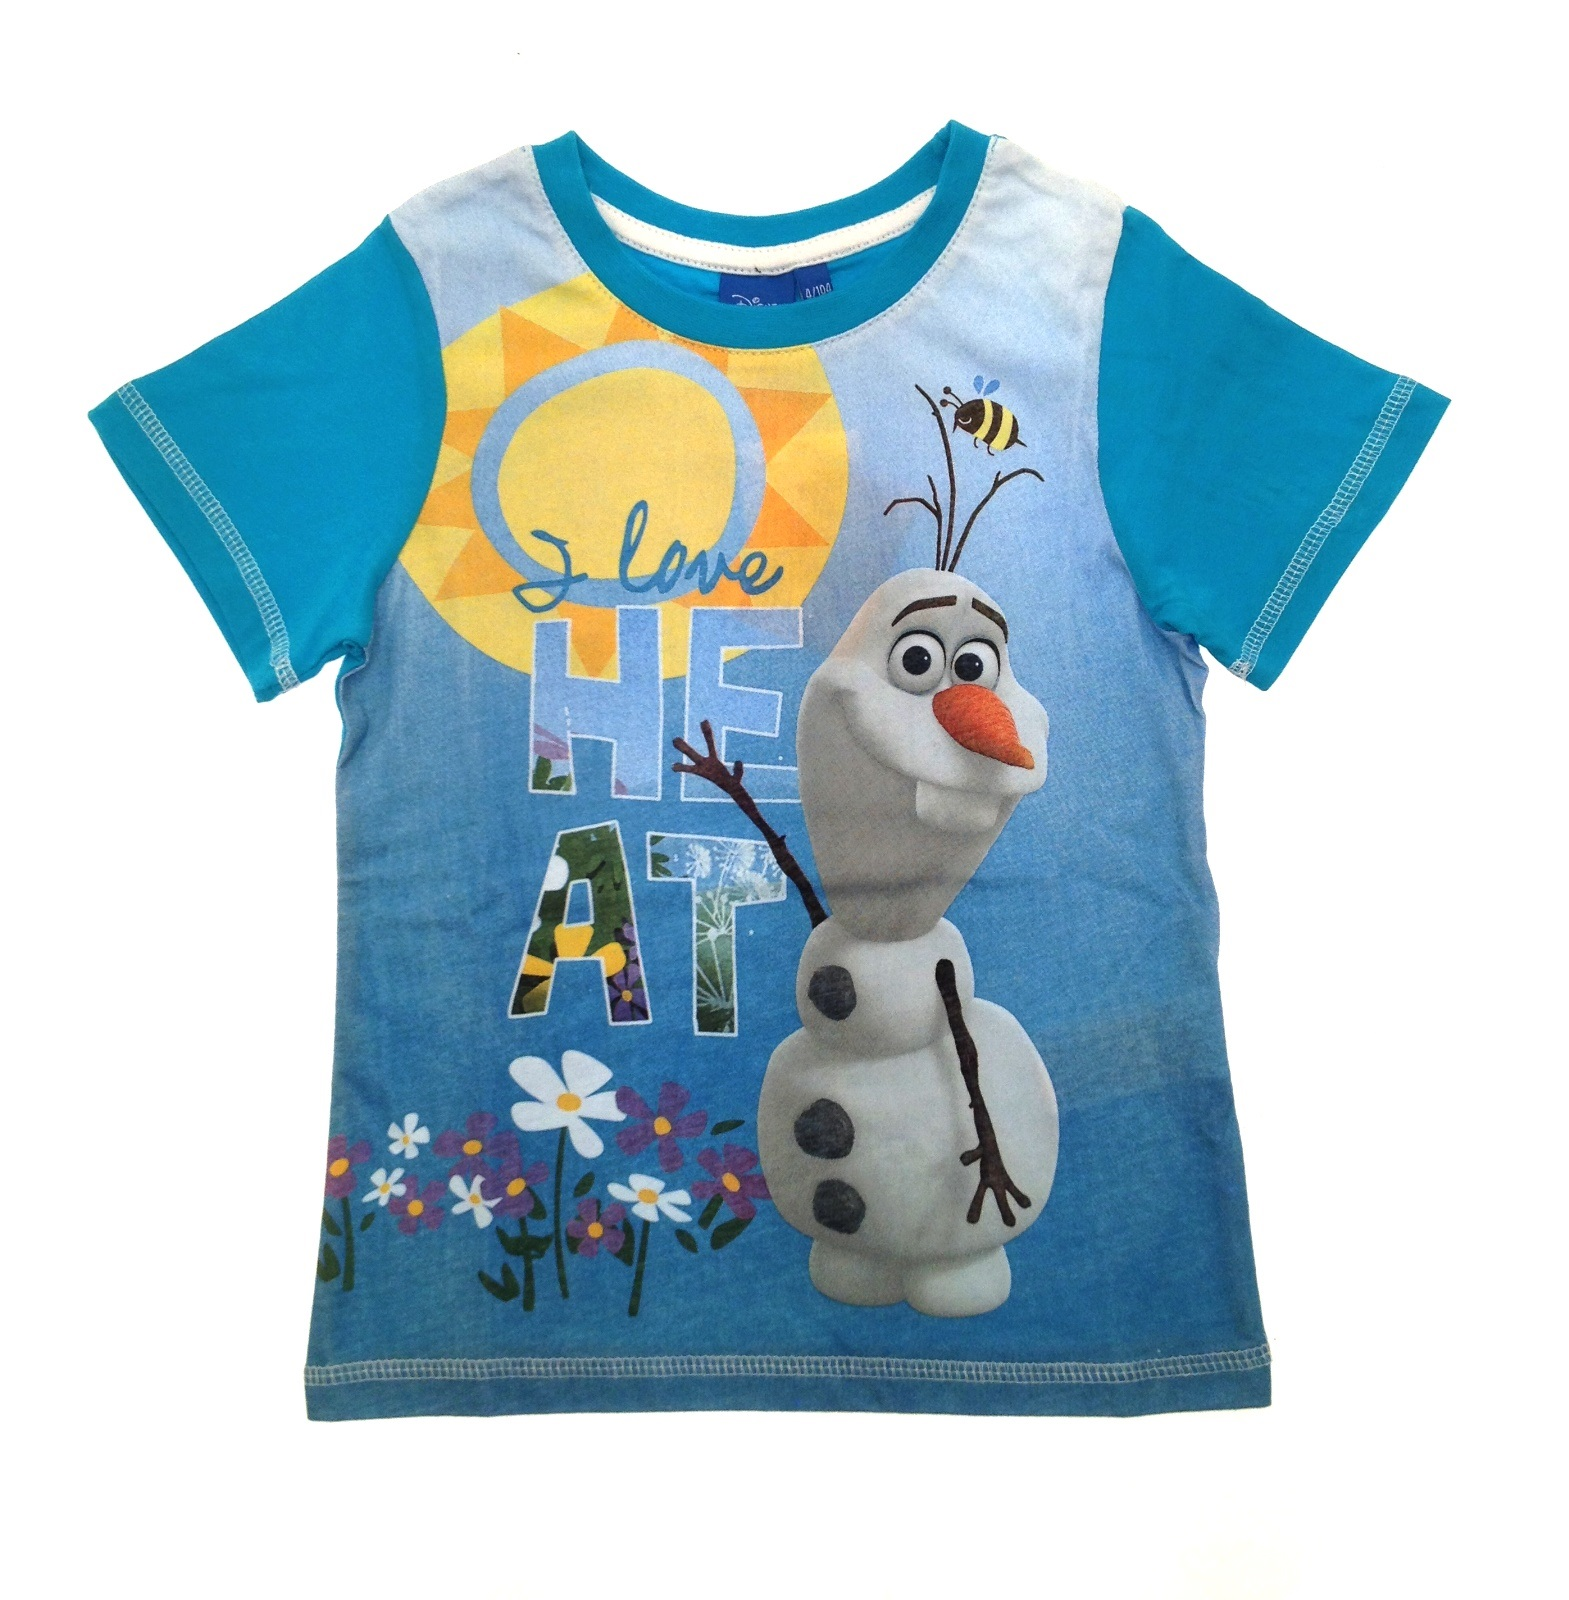 Disney frozen t shirts tops summer clothing childrens boys for Girls shirts size 8